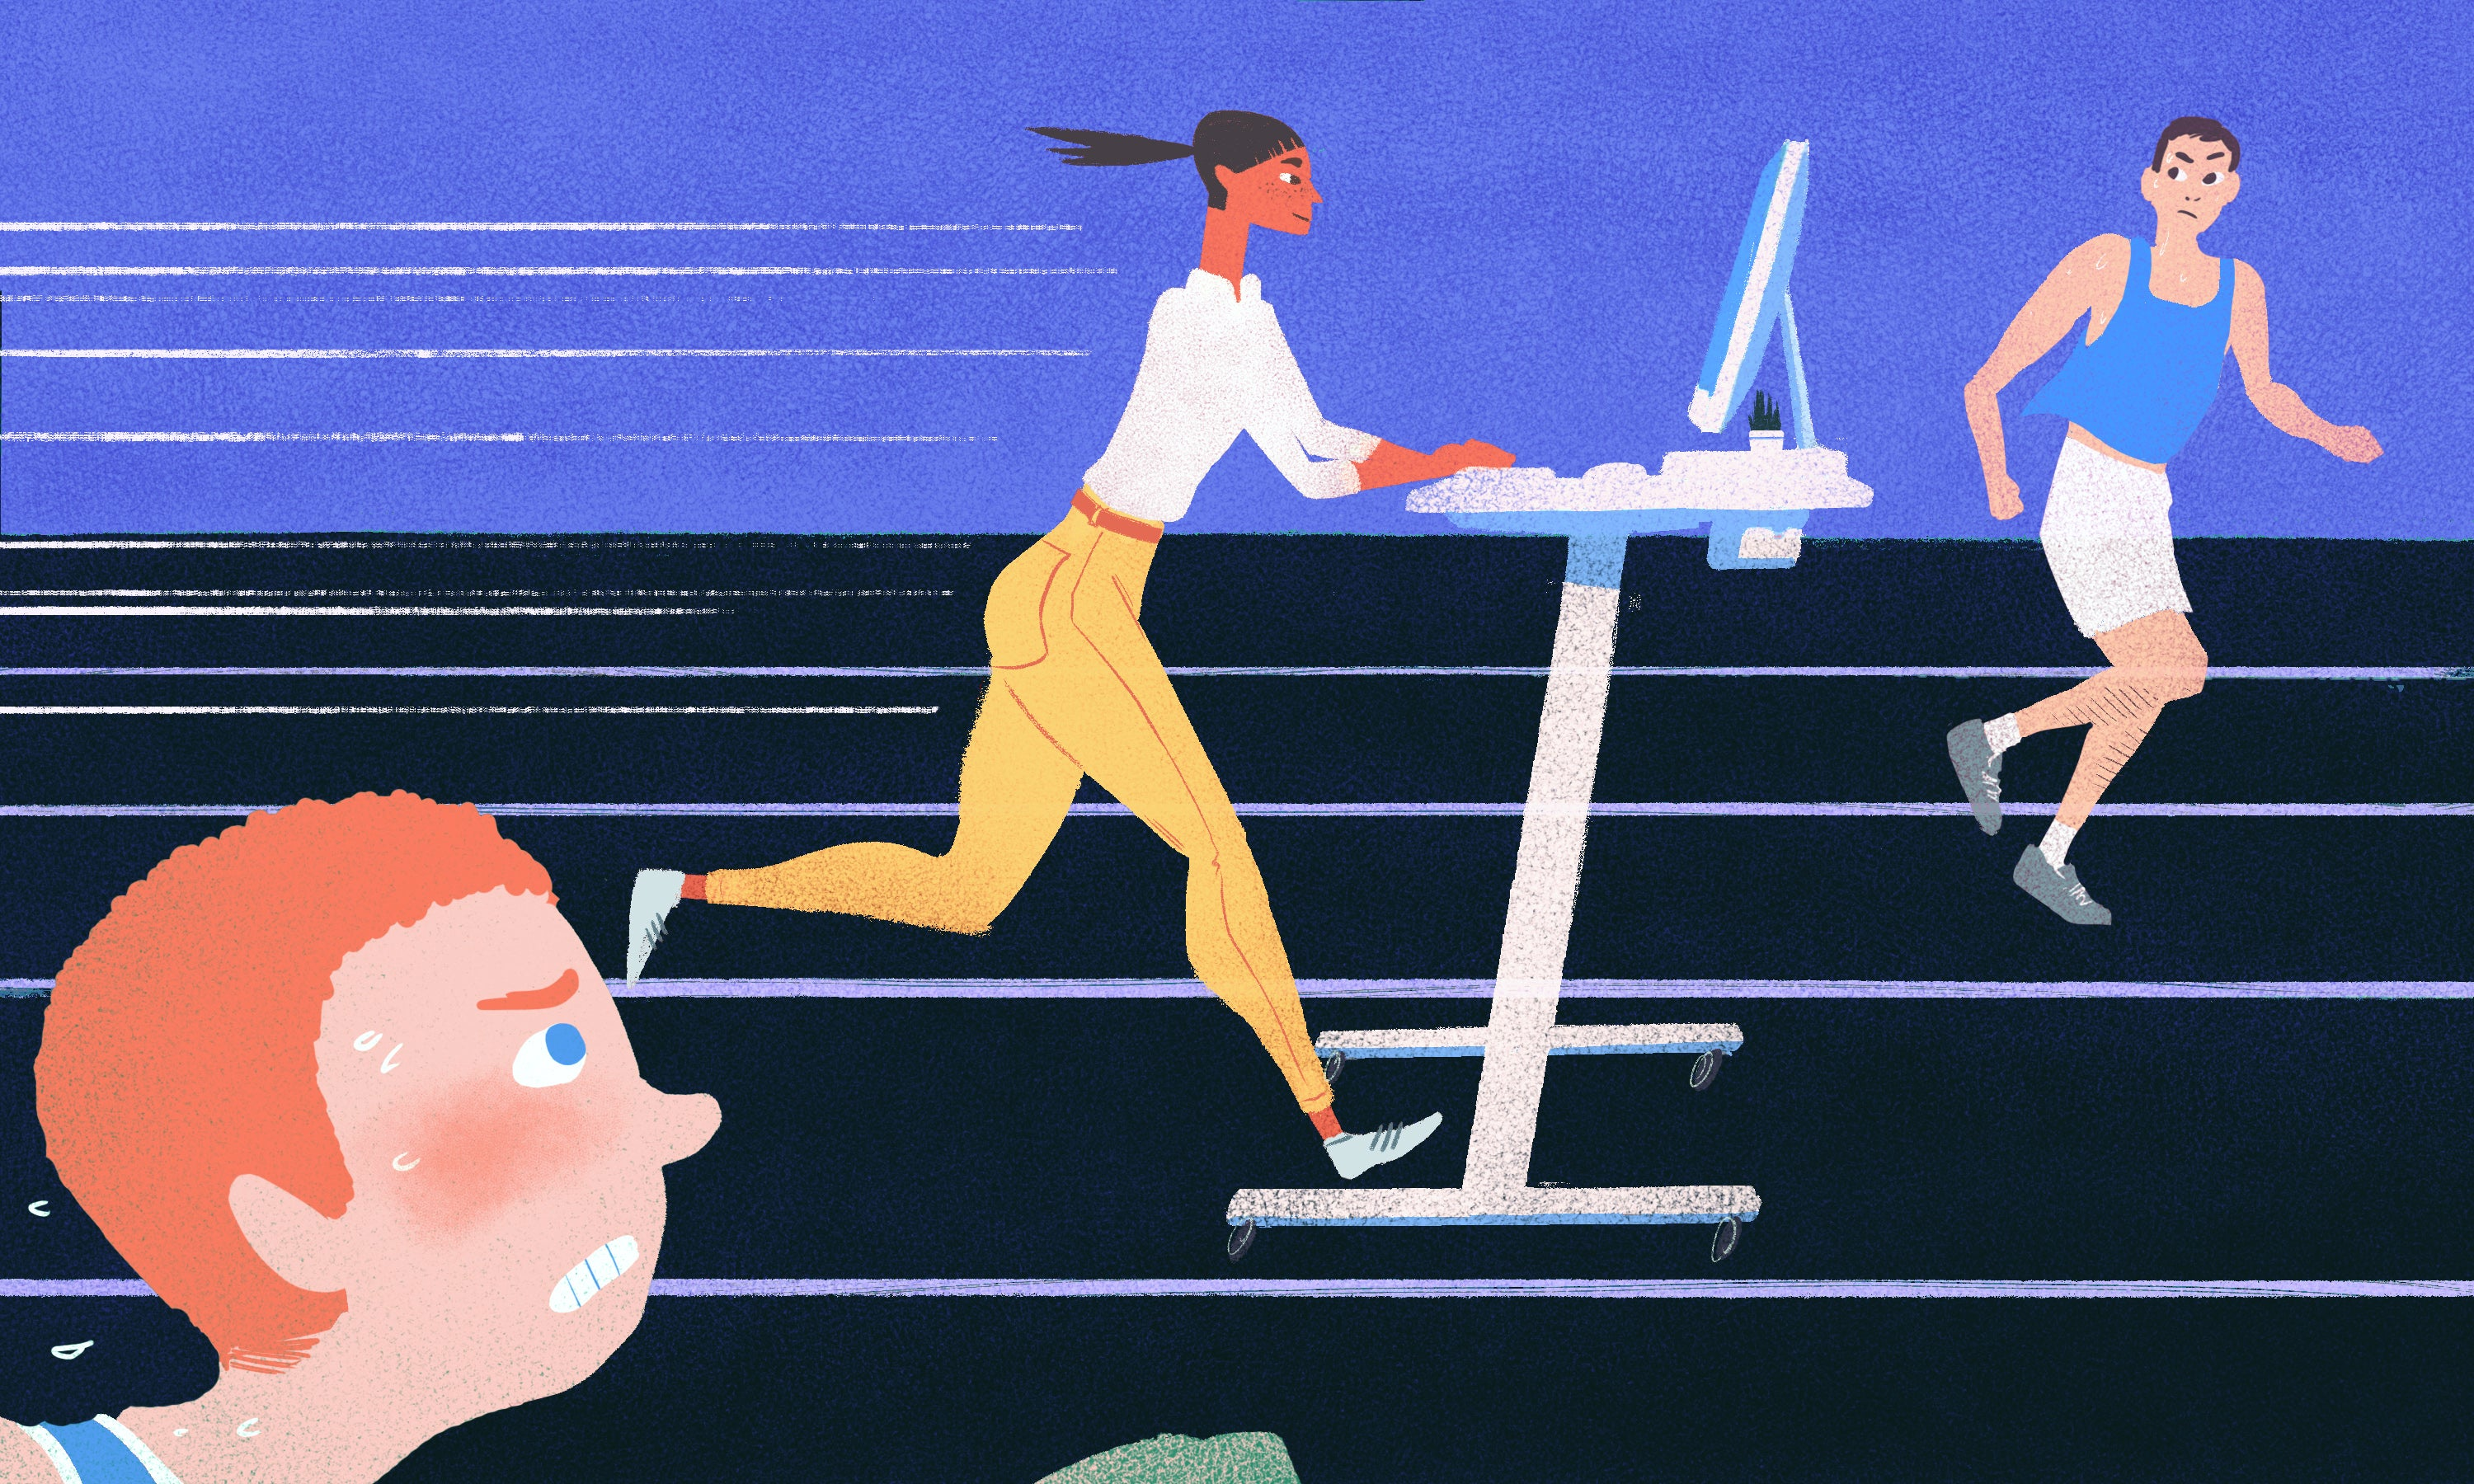 A Standing Desk Makes Me More Productive Even If Its Not Healthier